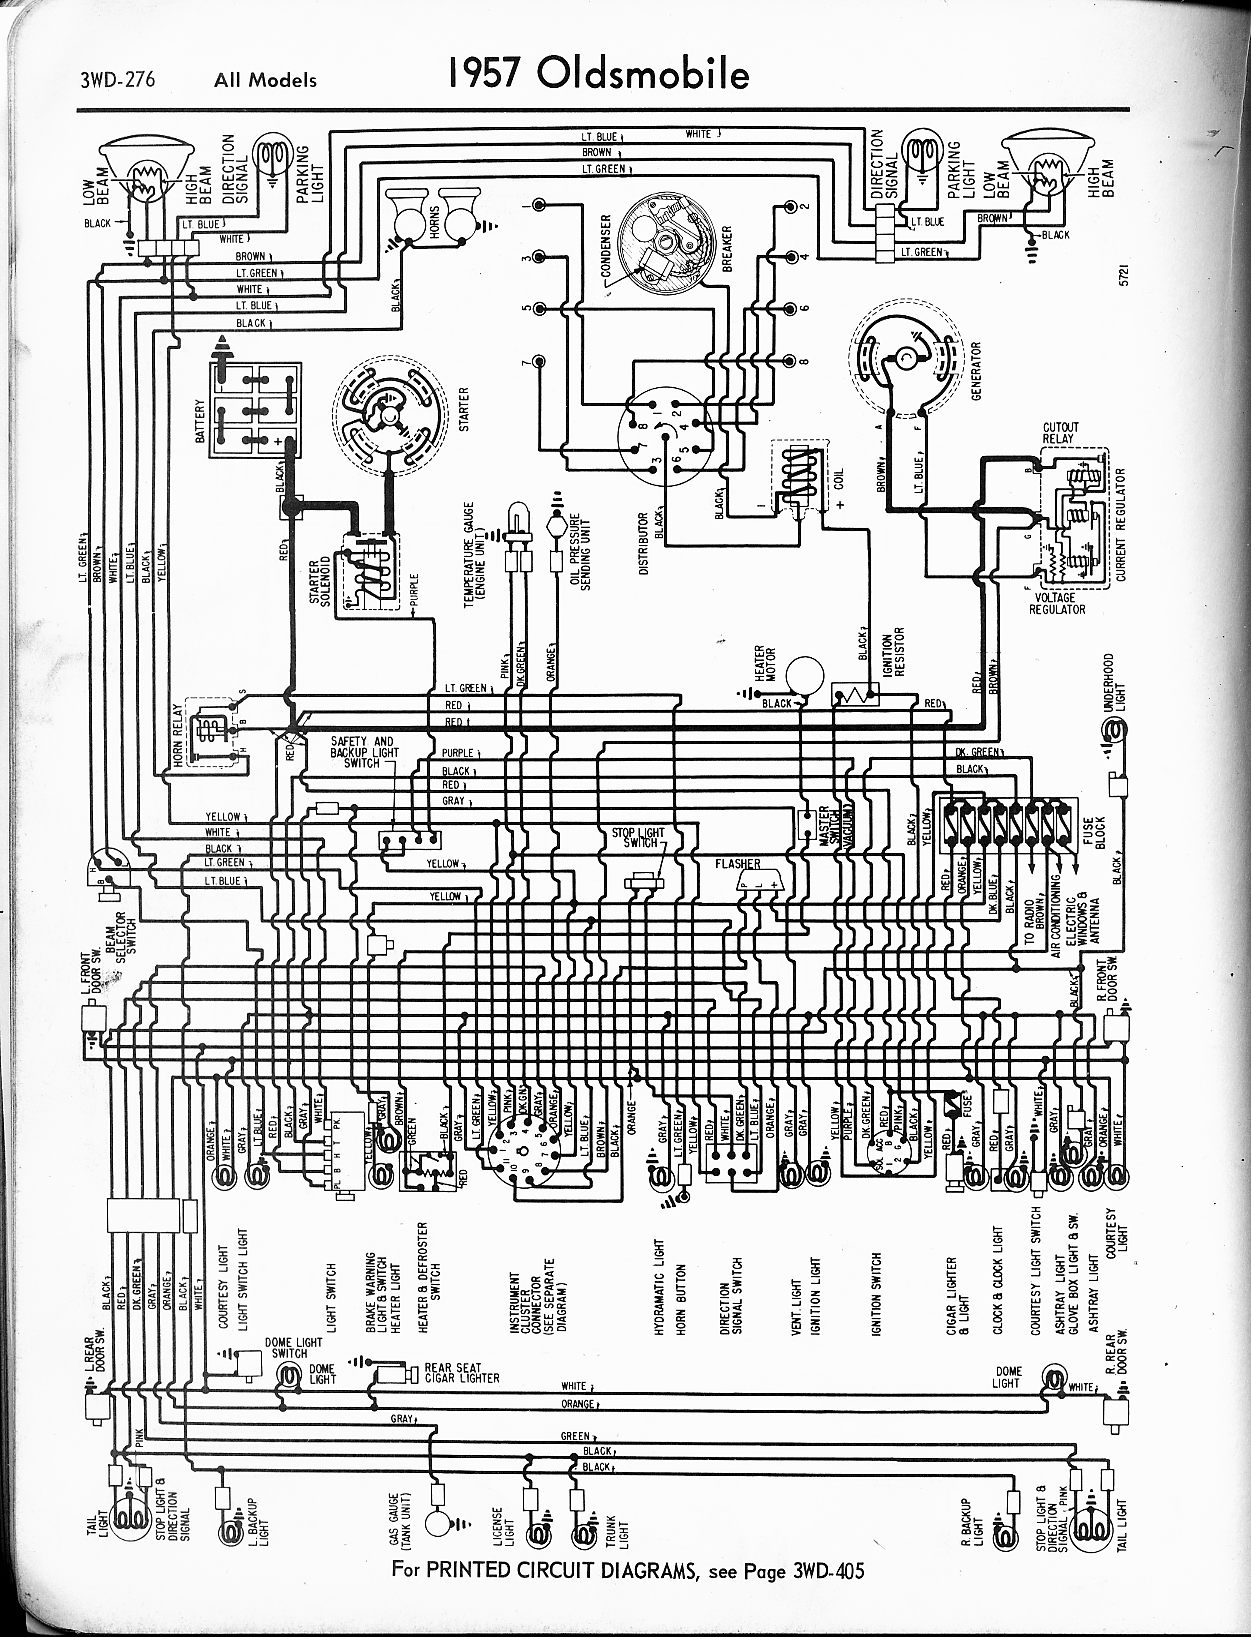 1956 oldsmobile wiring diagram wiring diagrams wire rh 18 ert derharlekin de